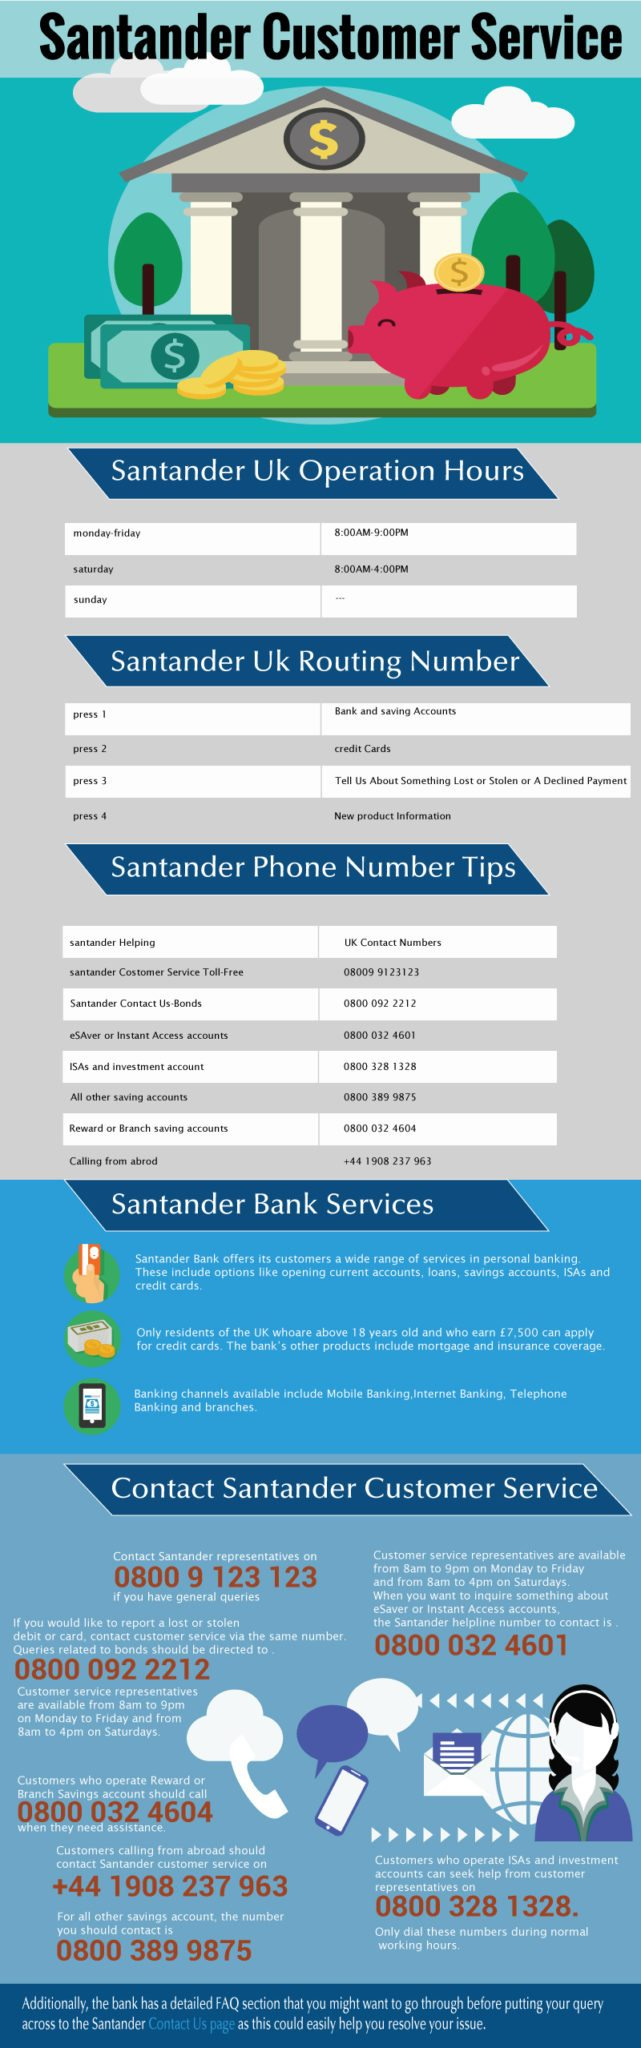 Santander Telephone Number